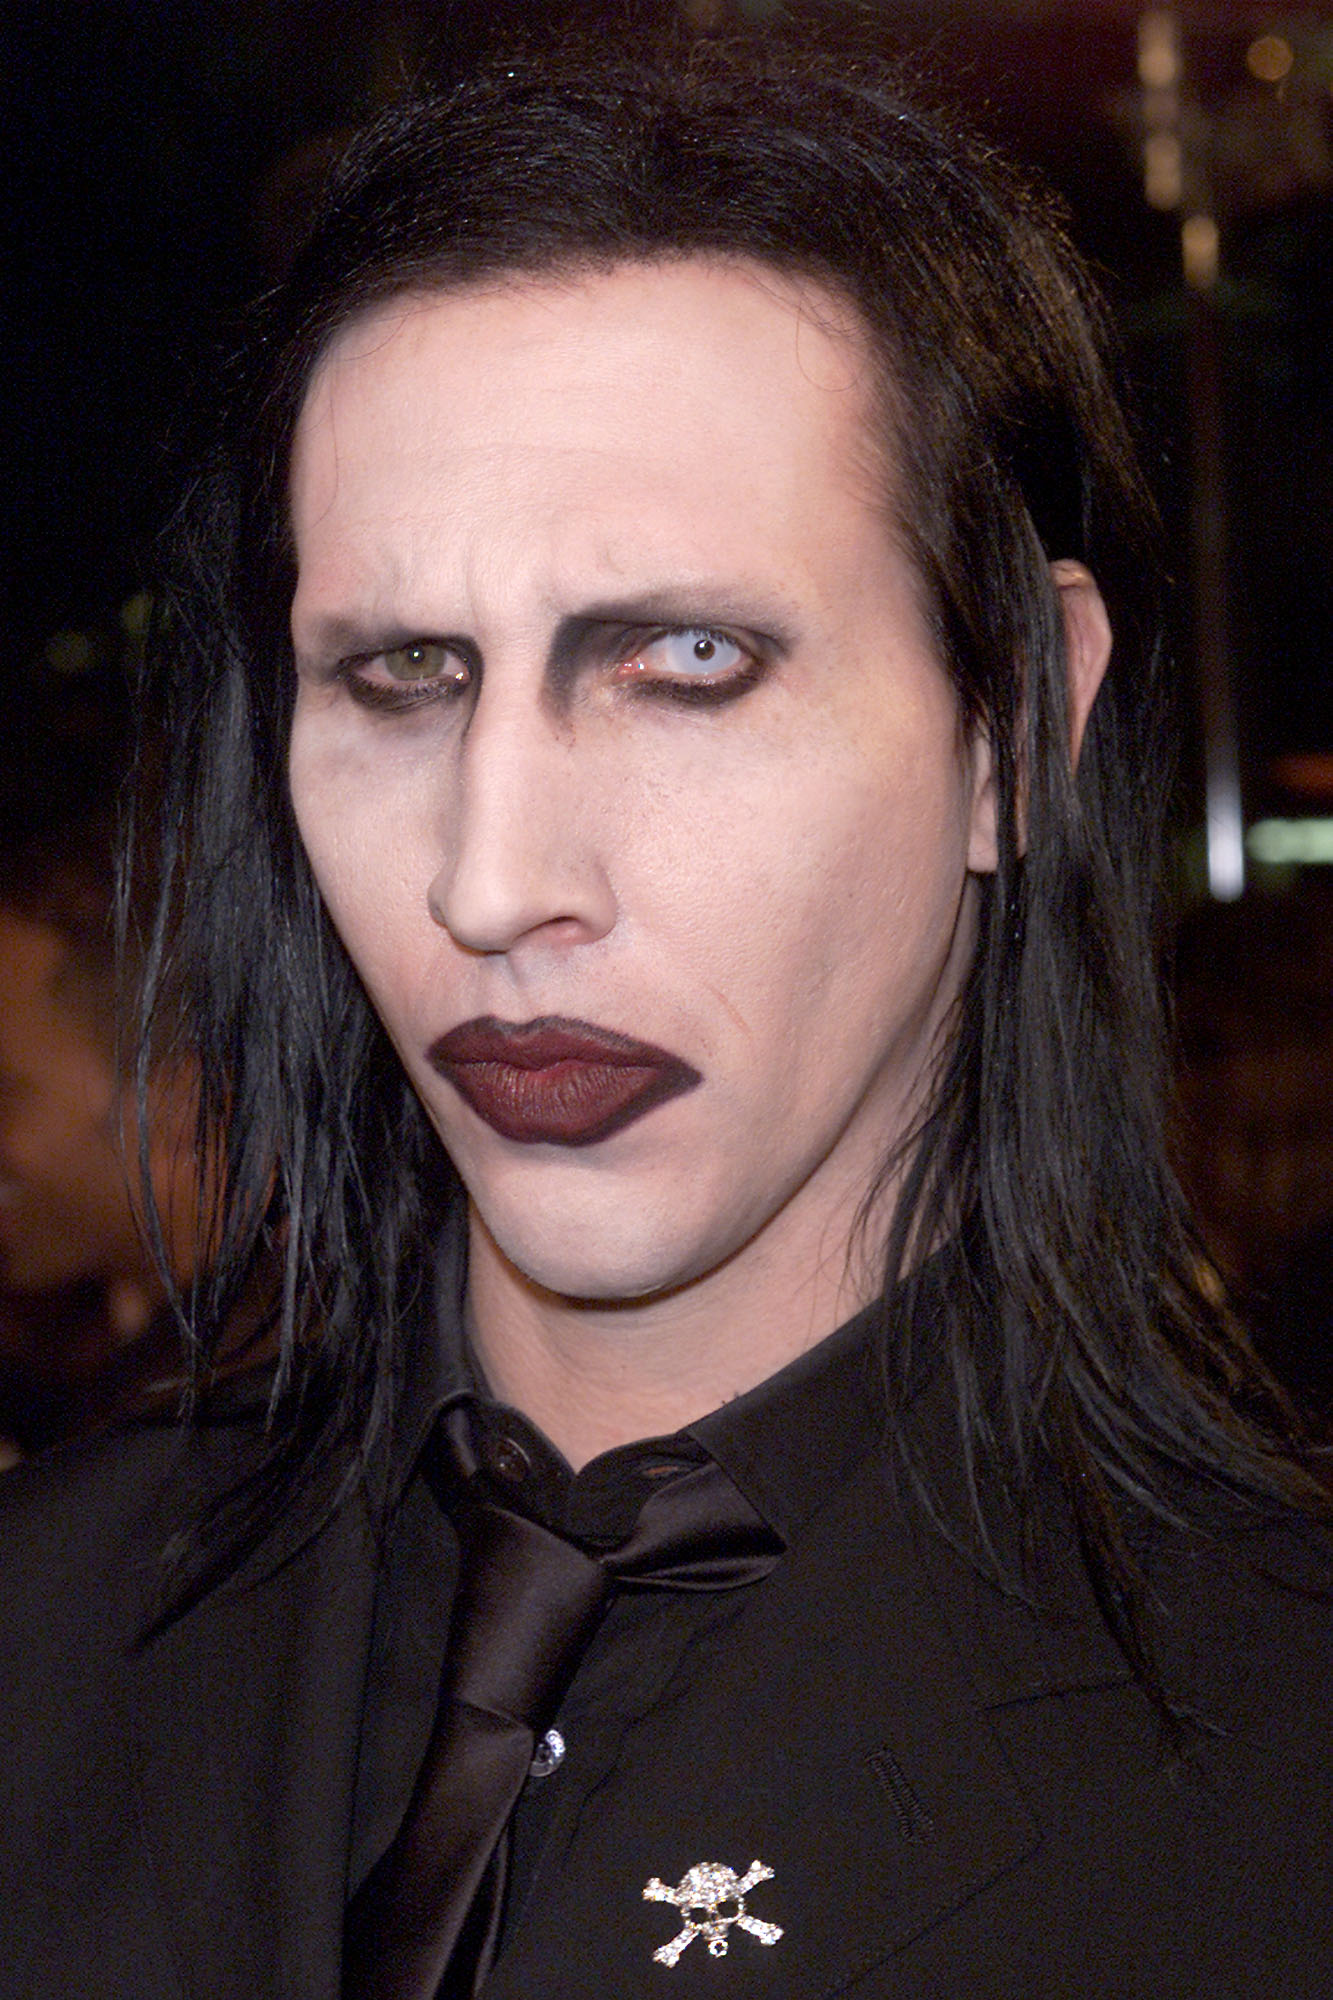 Marilyn Manson Child Actor Wonder Years